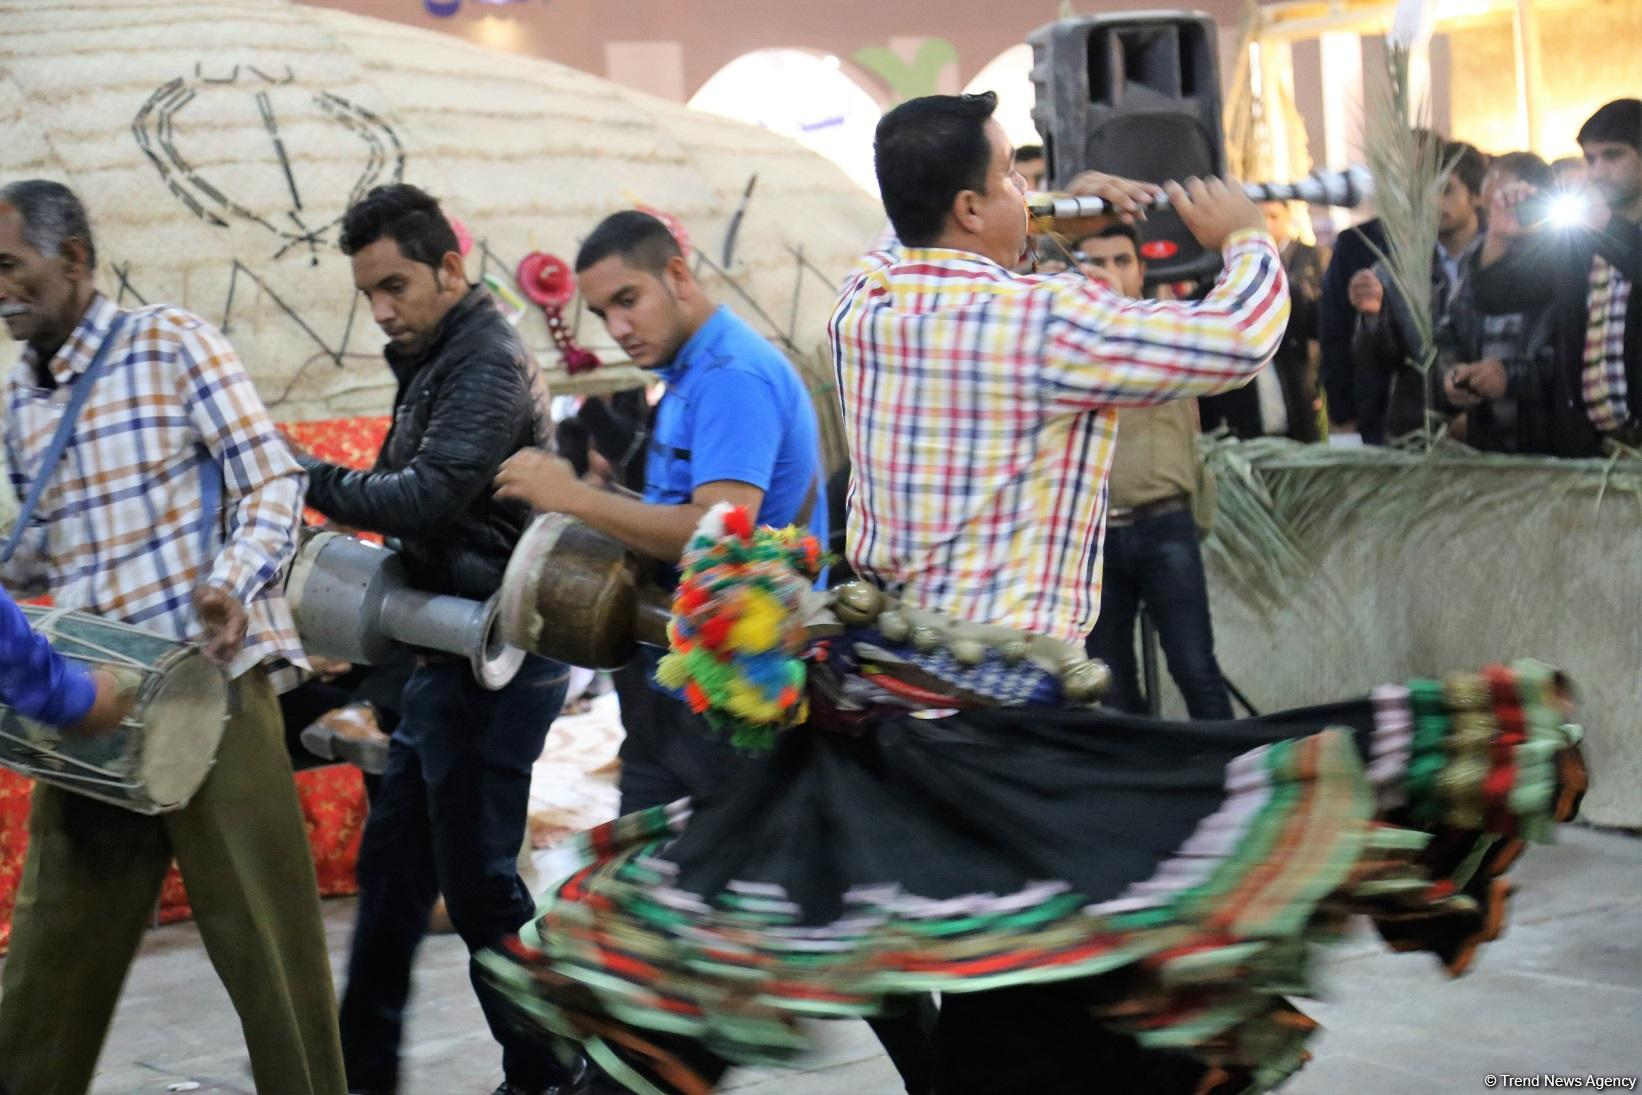 Iran's nomadic tribes dance to unity (PHOTO)